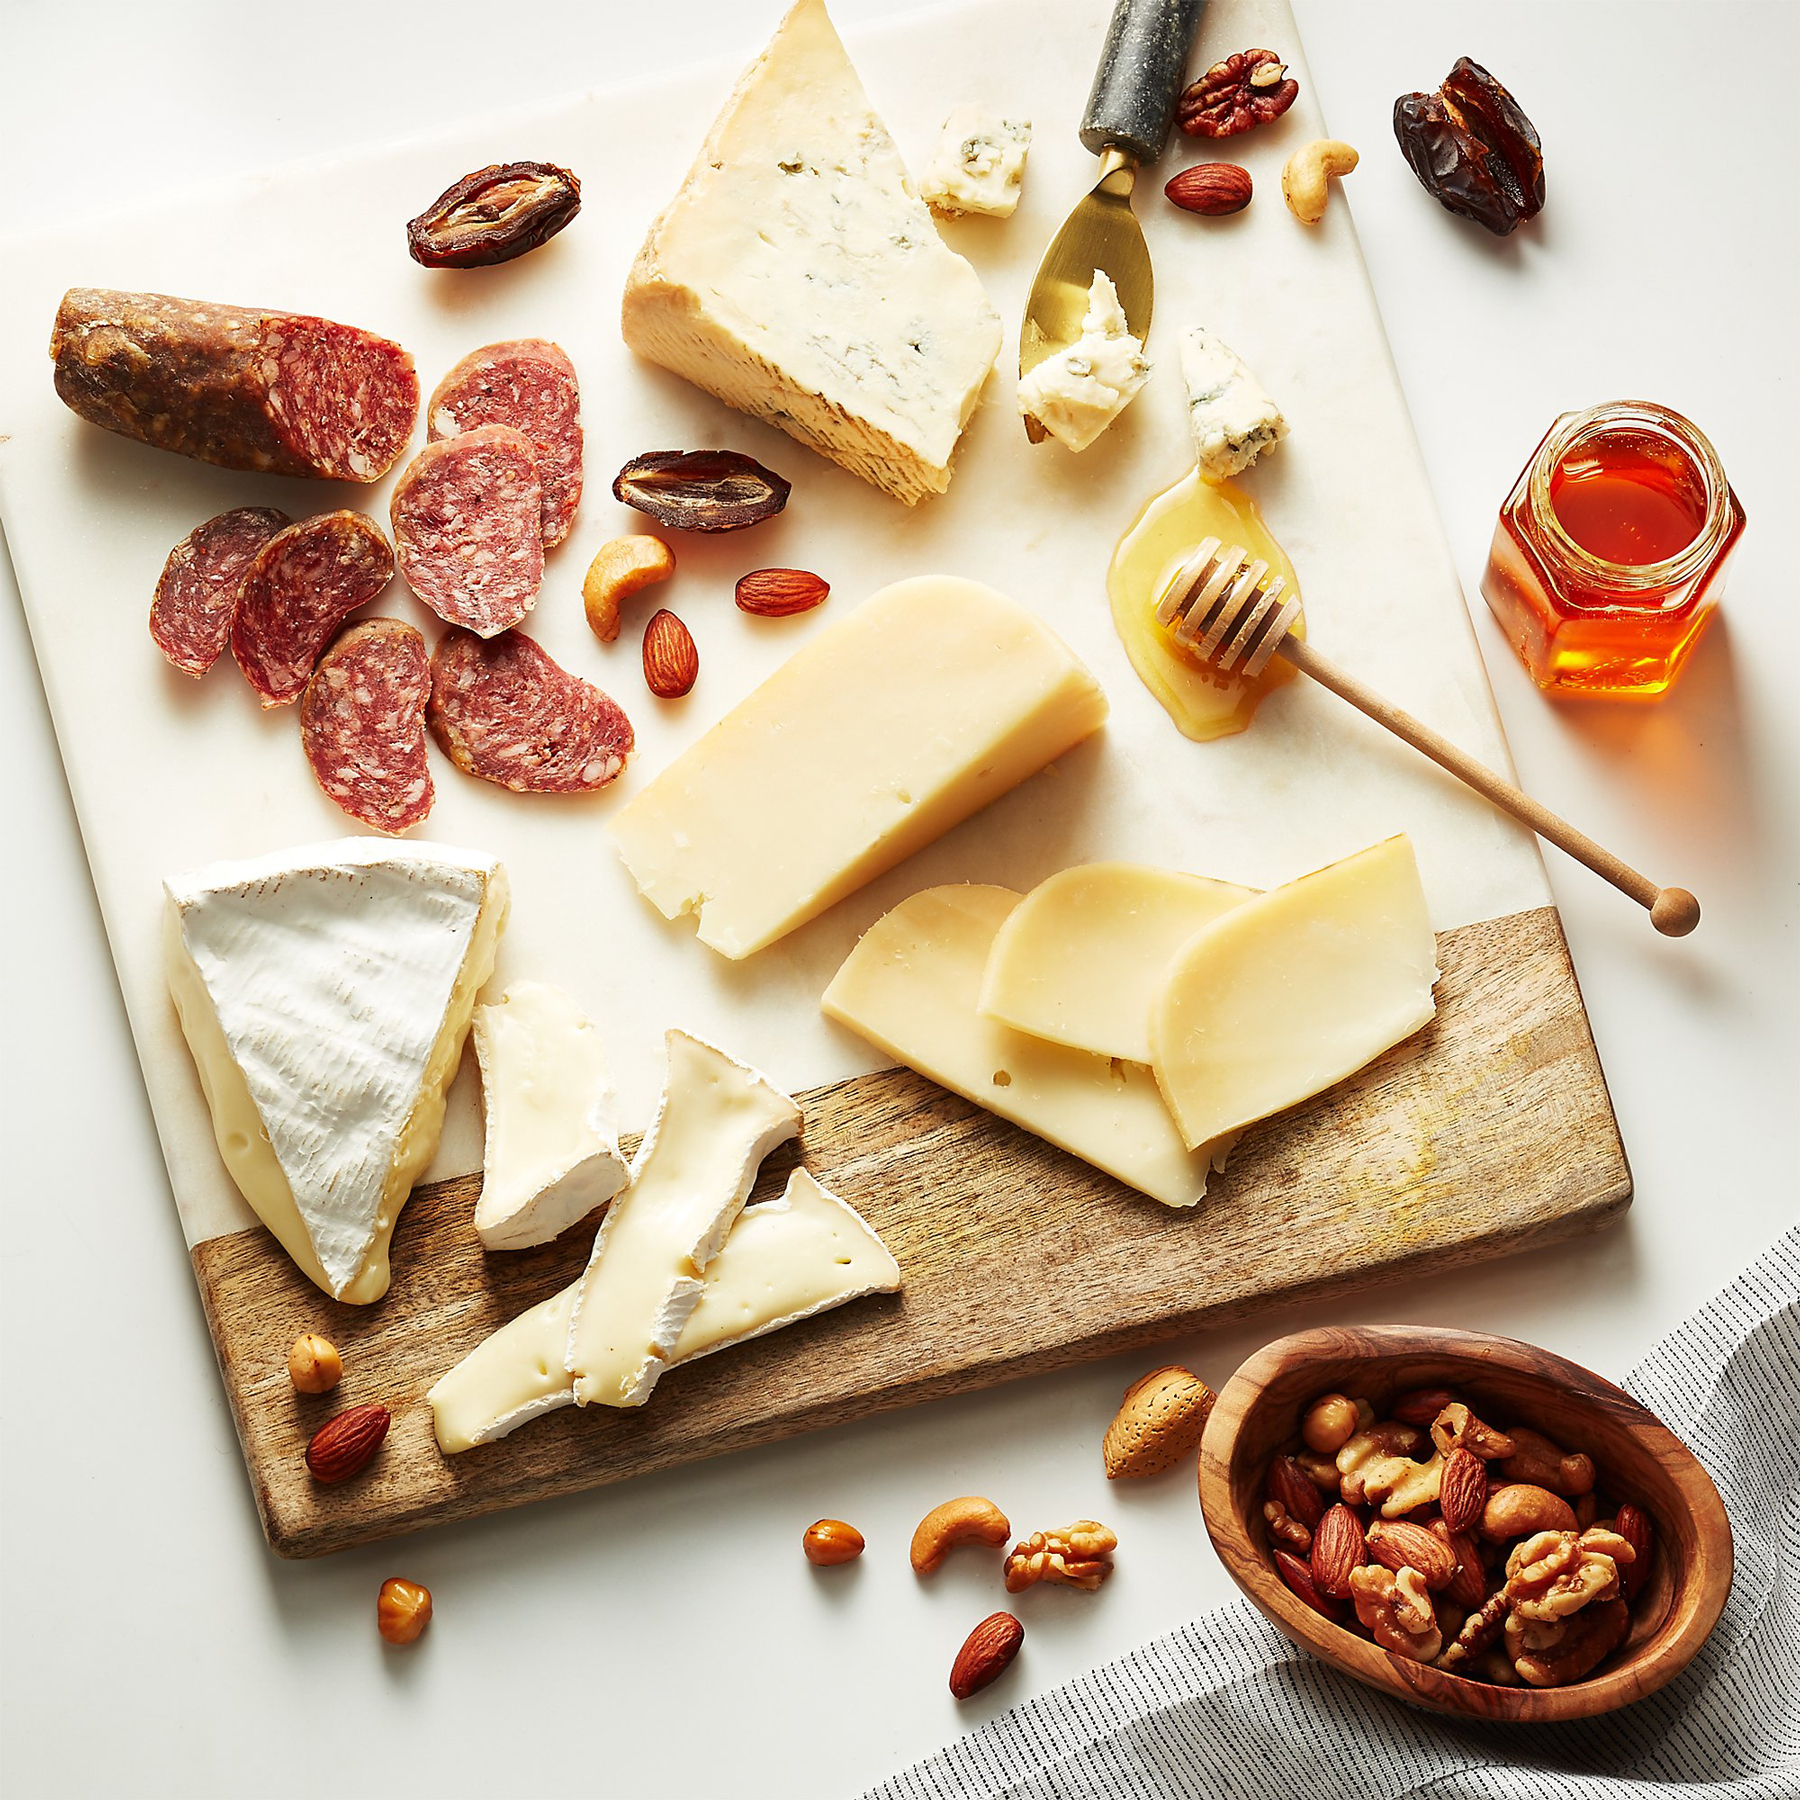 Crate and Barrel cheese and charcuterie board collections - the Party Starter